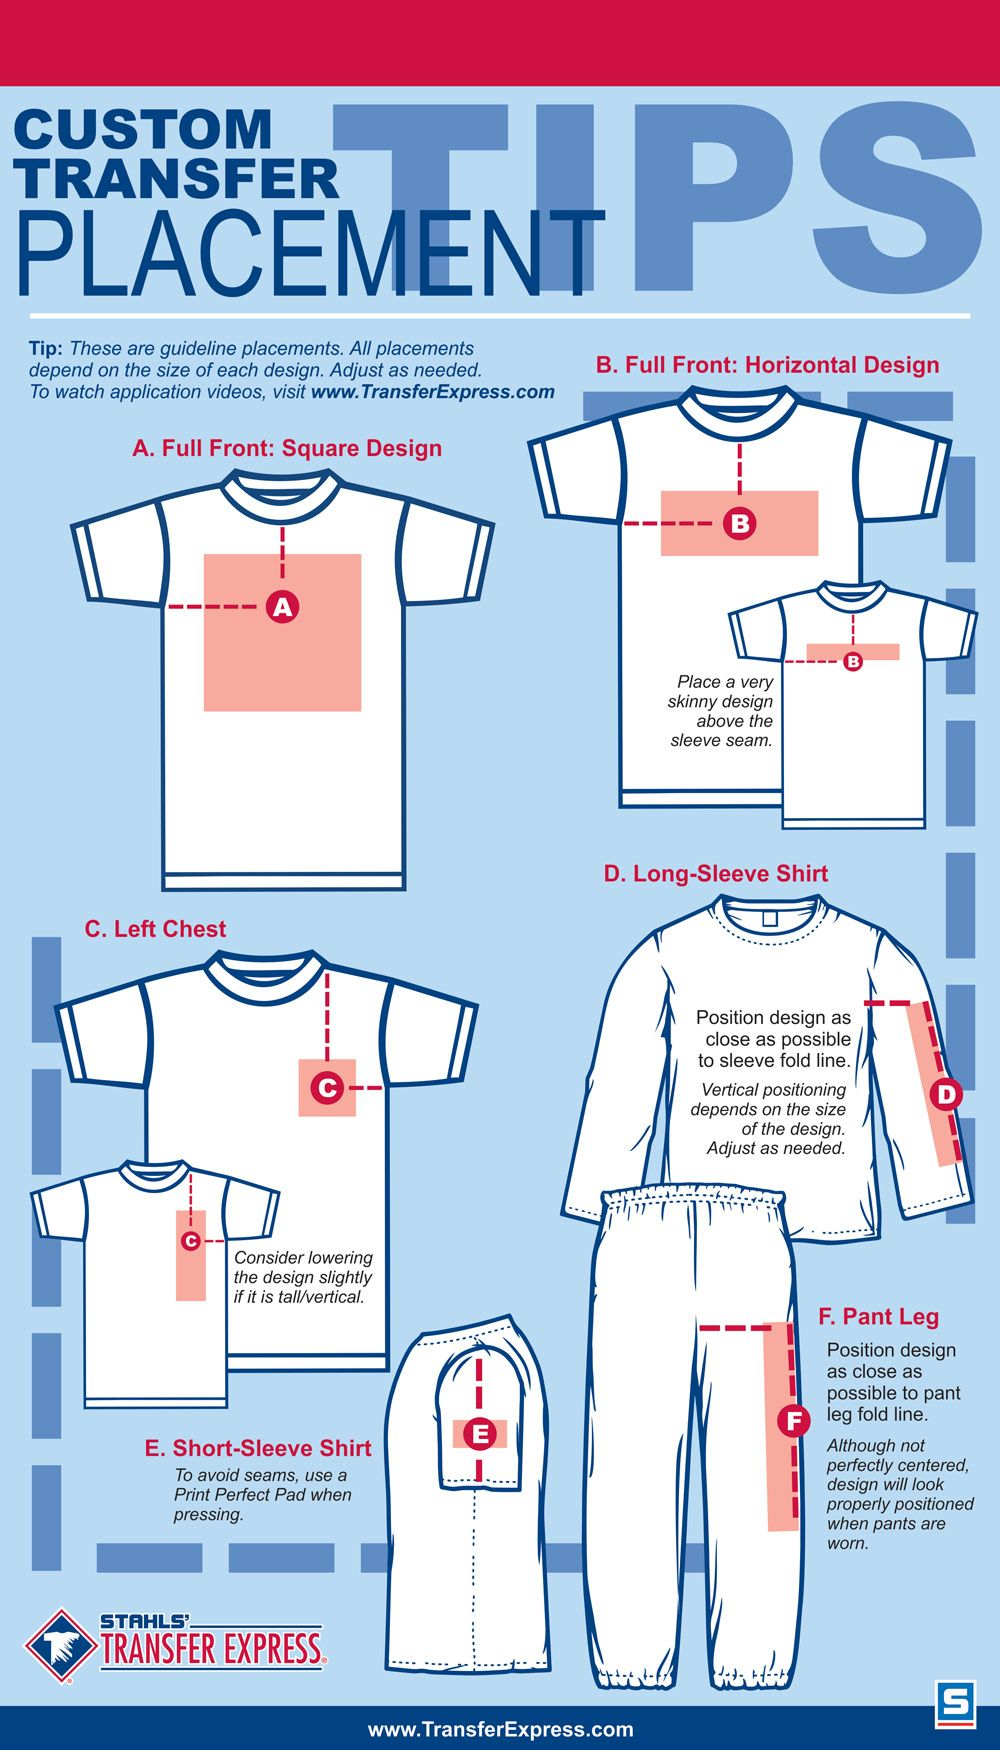 Design t shirt transfer template - Tips For Design Image Placement When Customizing Apparel Custom Apparel Infographic Transferexpress Com